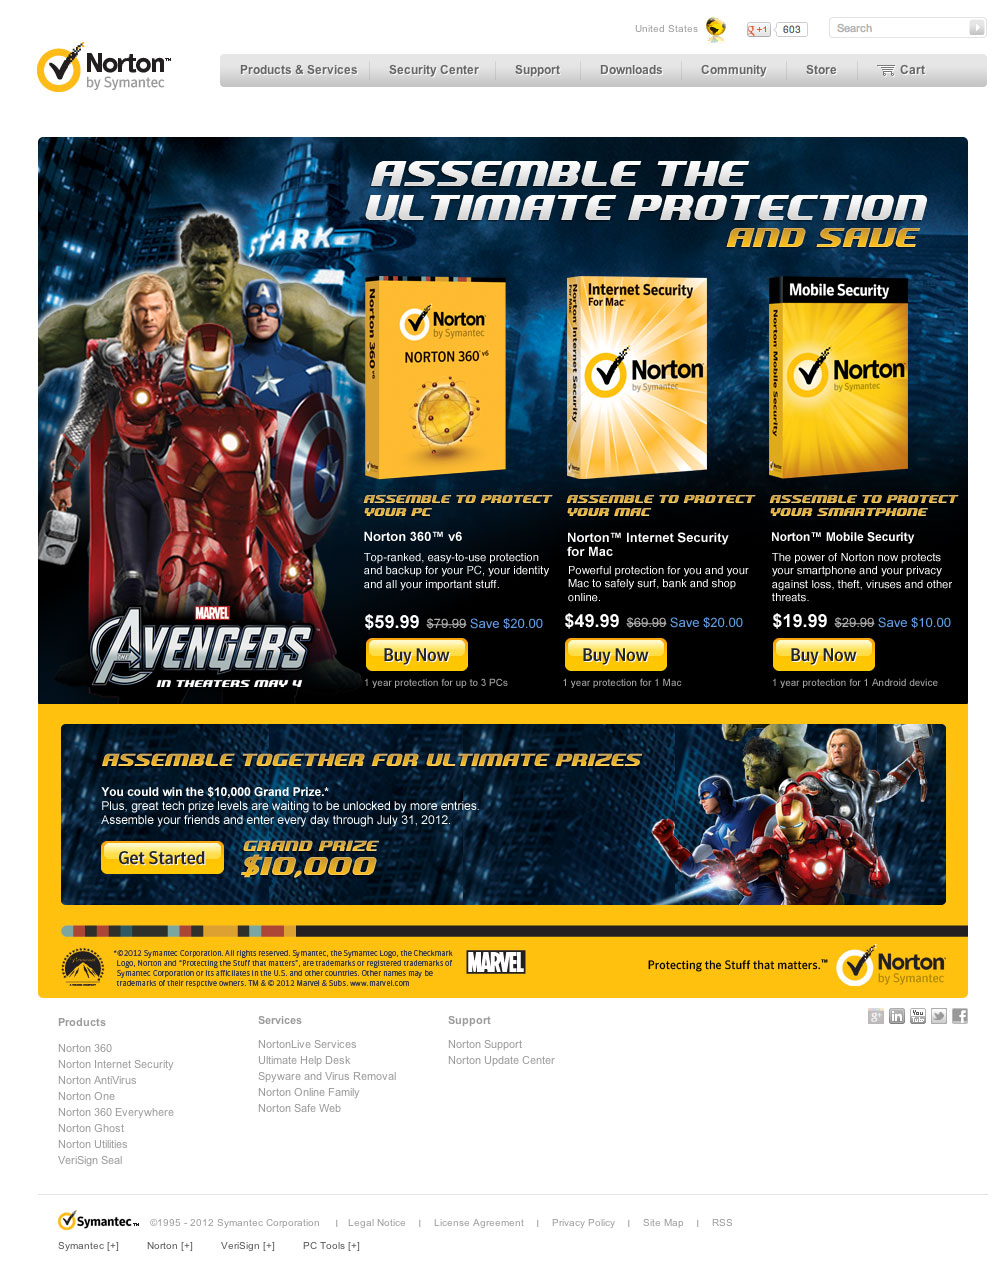 My Avengers landing page experience